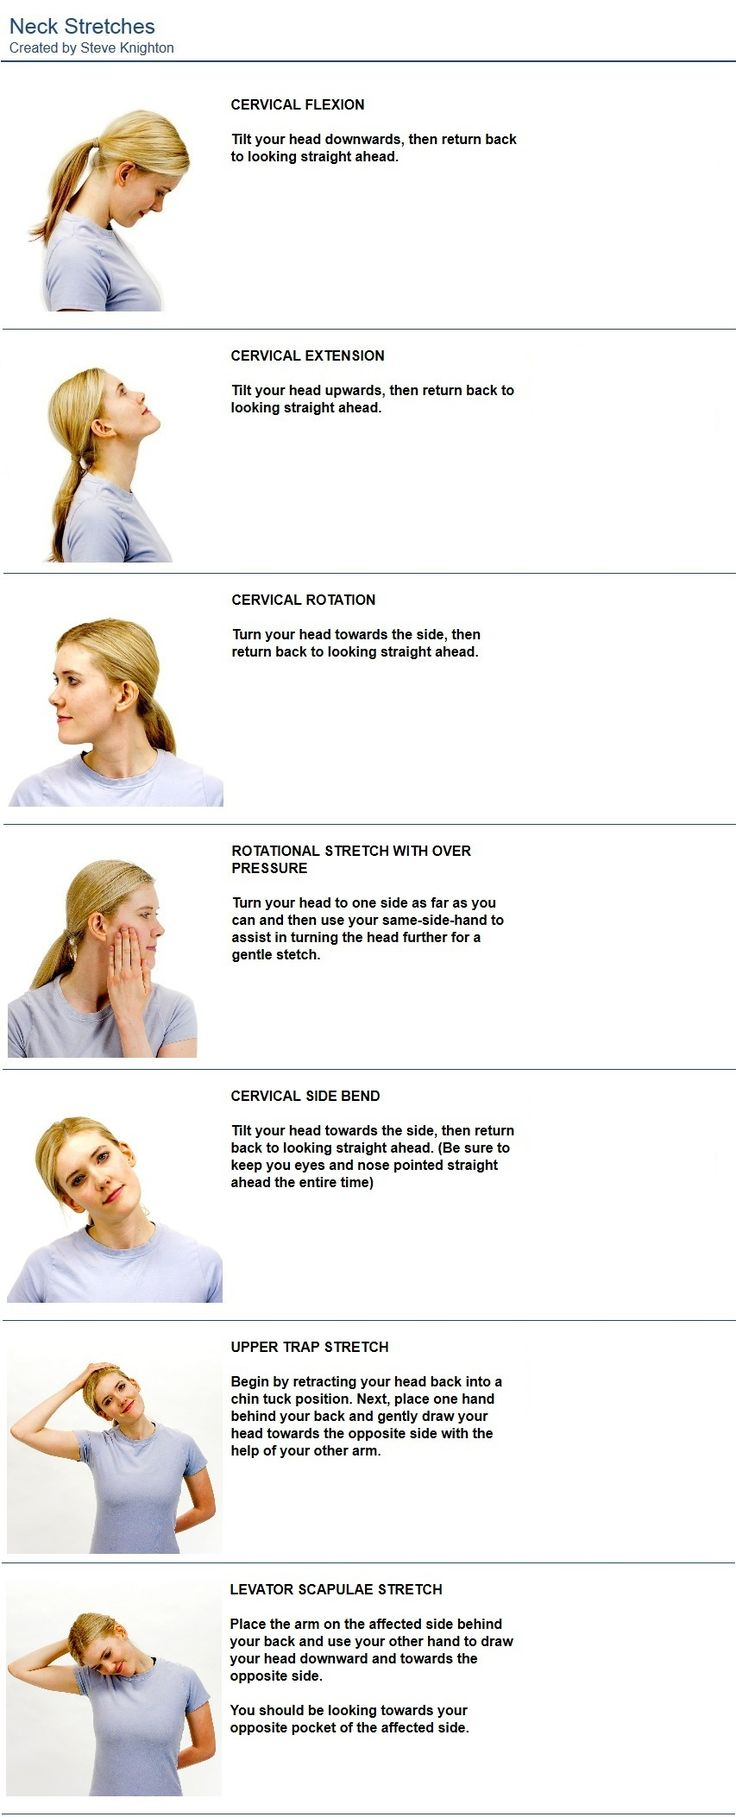 Neck Stretches to Alleviate Tension in the Neck and Shoulders as well. #neckstretches